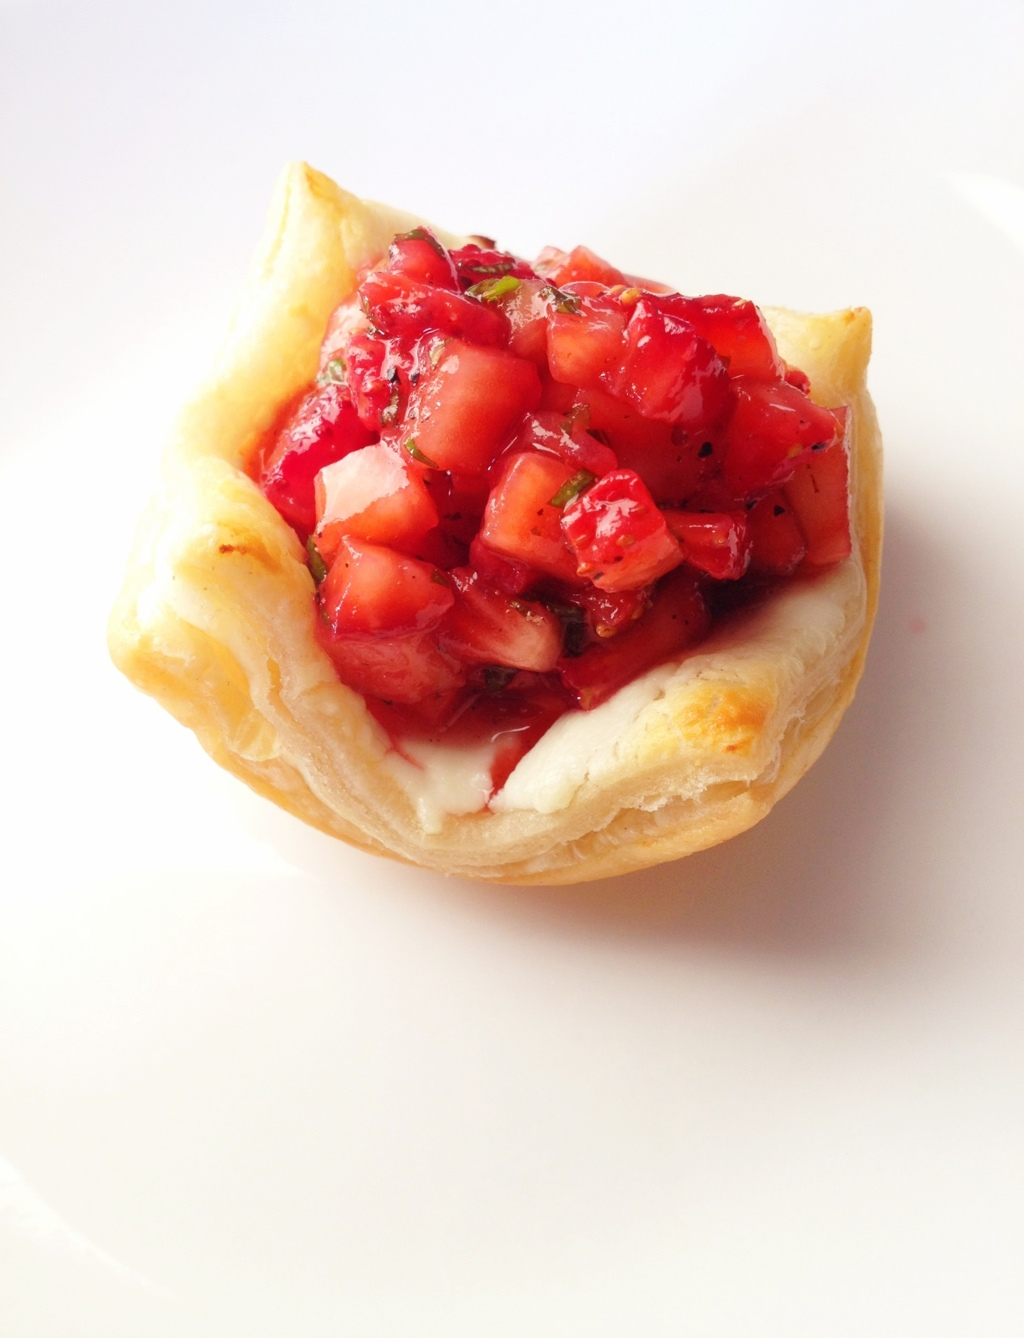 Strawberries & Cheese Bites